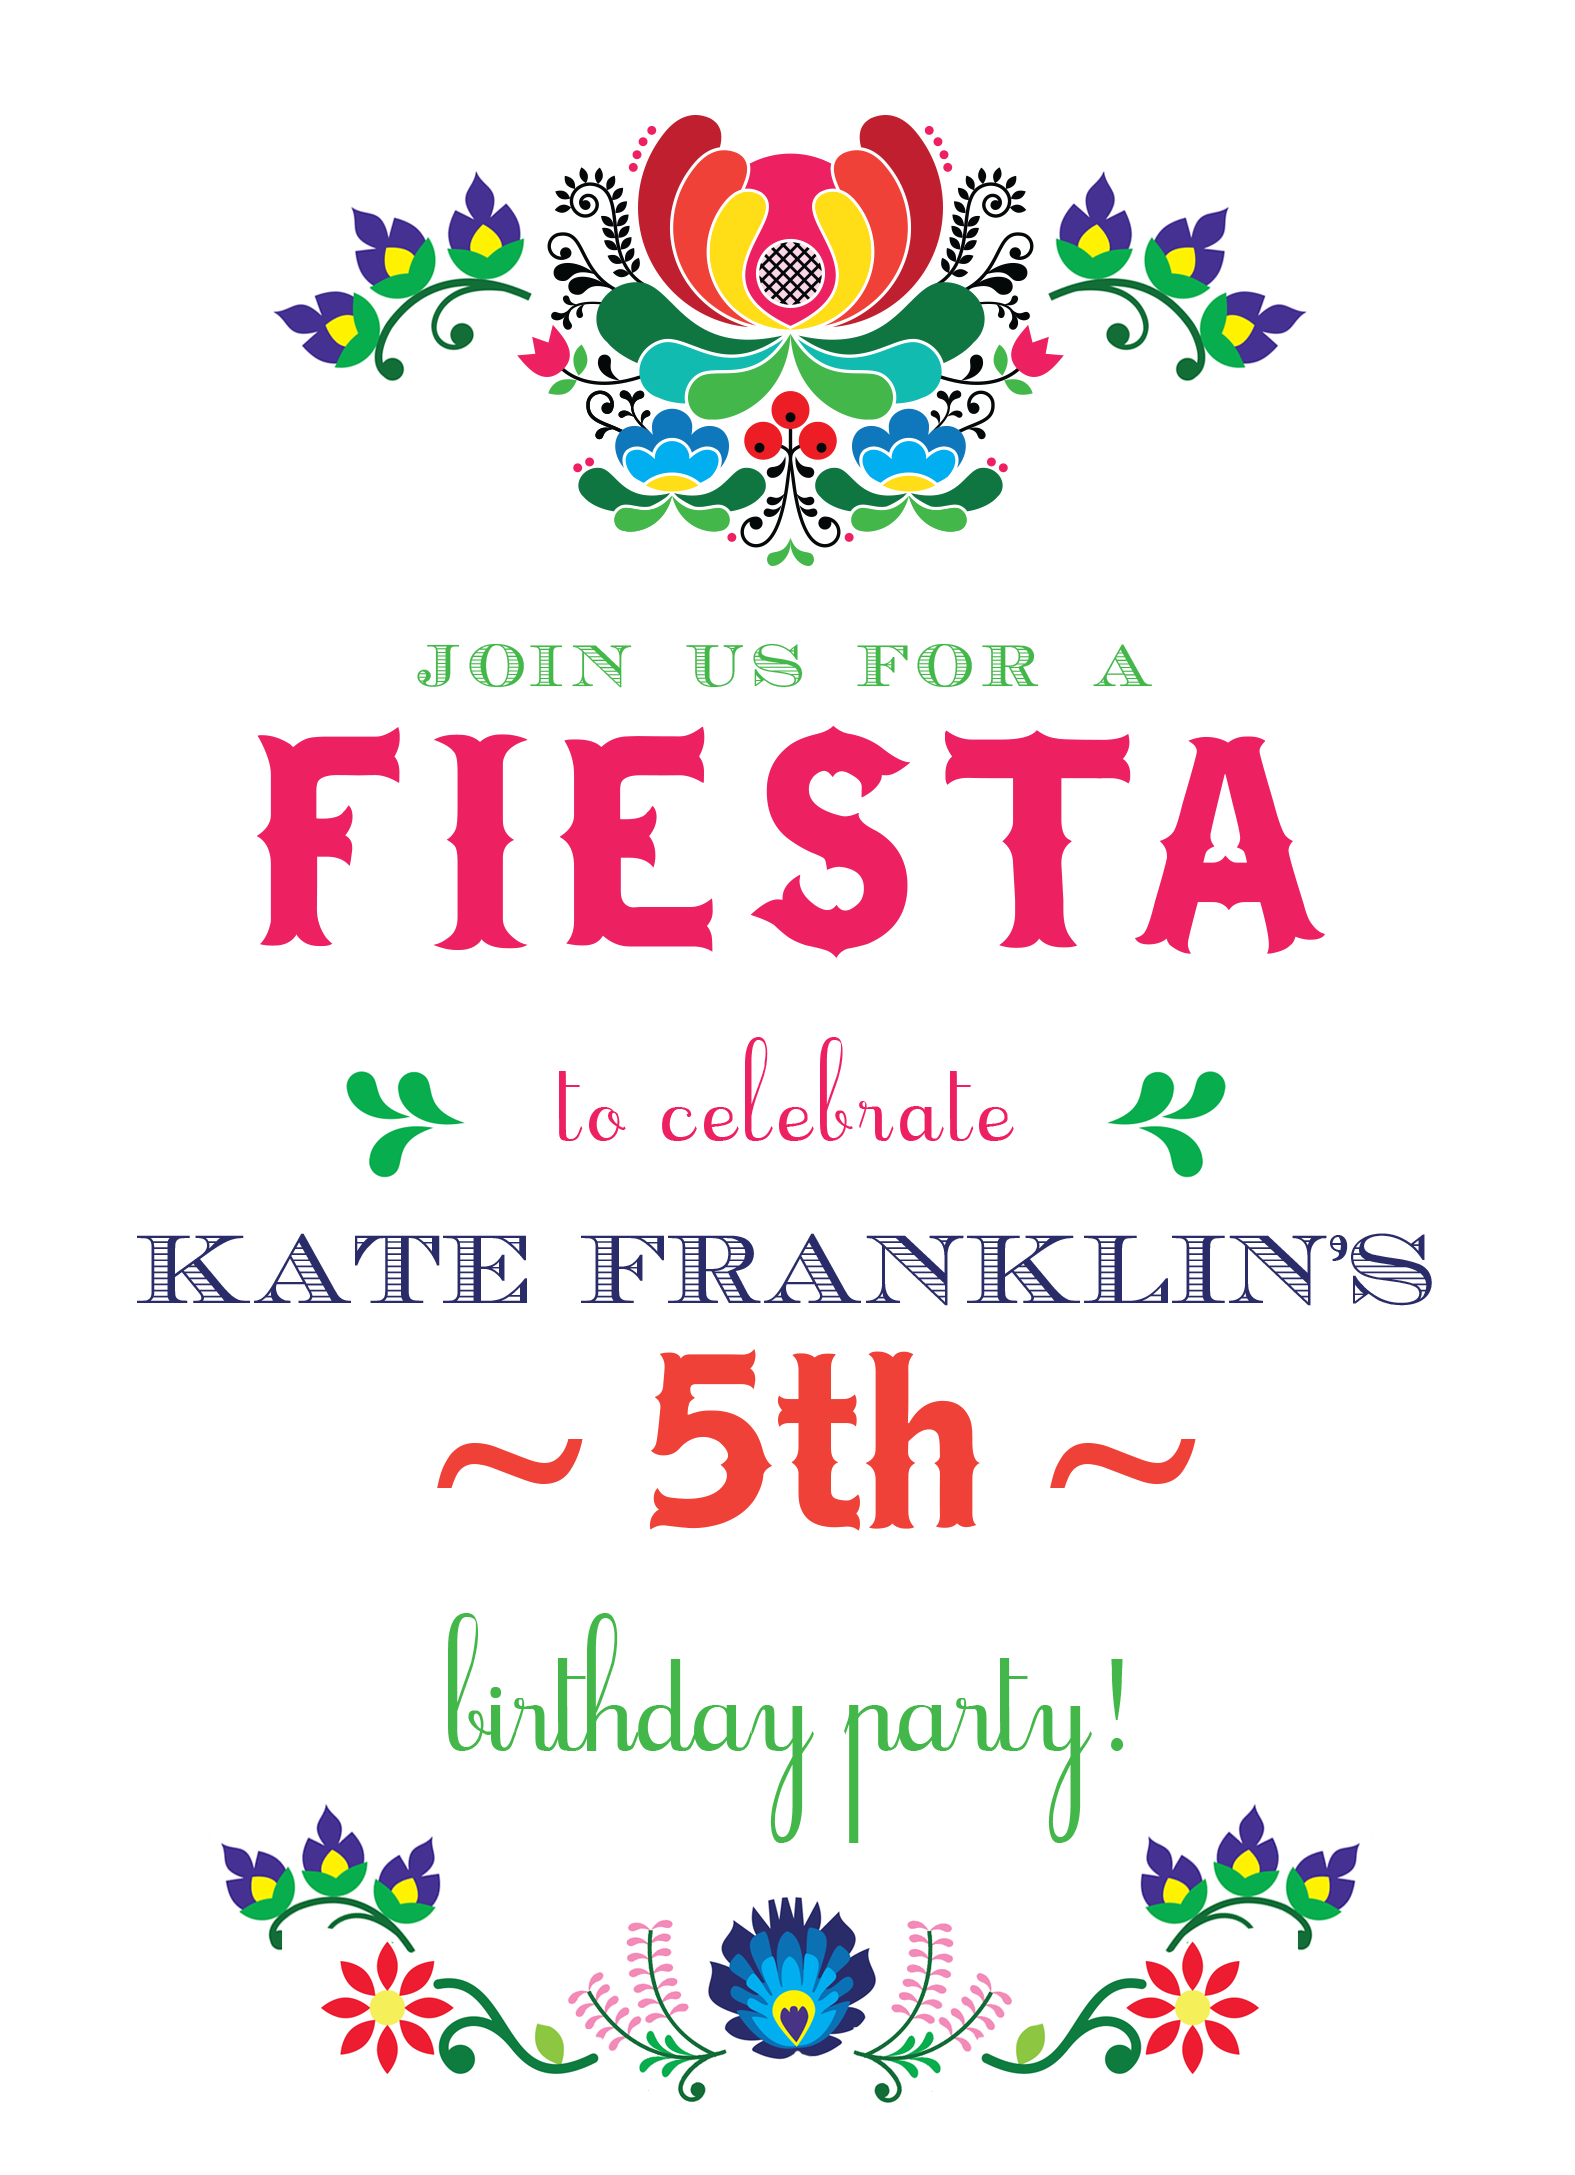 Invite Friends And Family To Your Fiesta Birthday Party Invitation